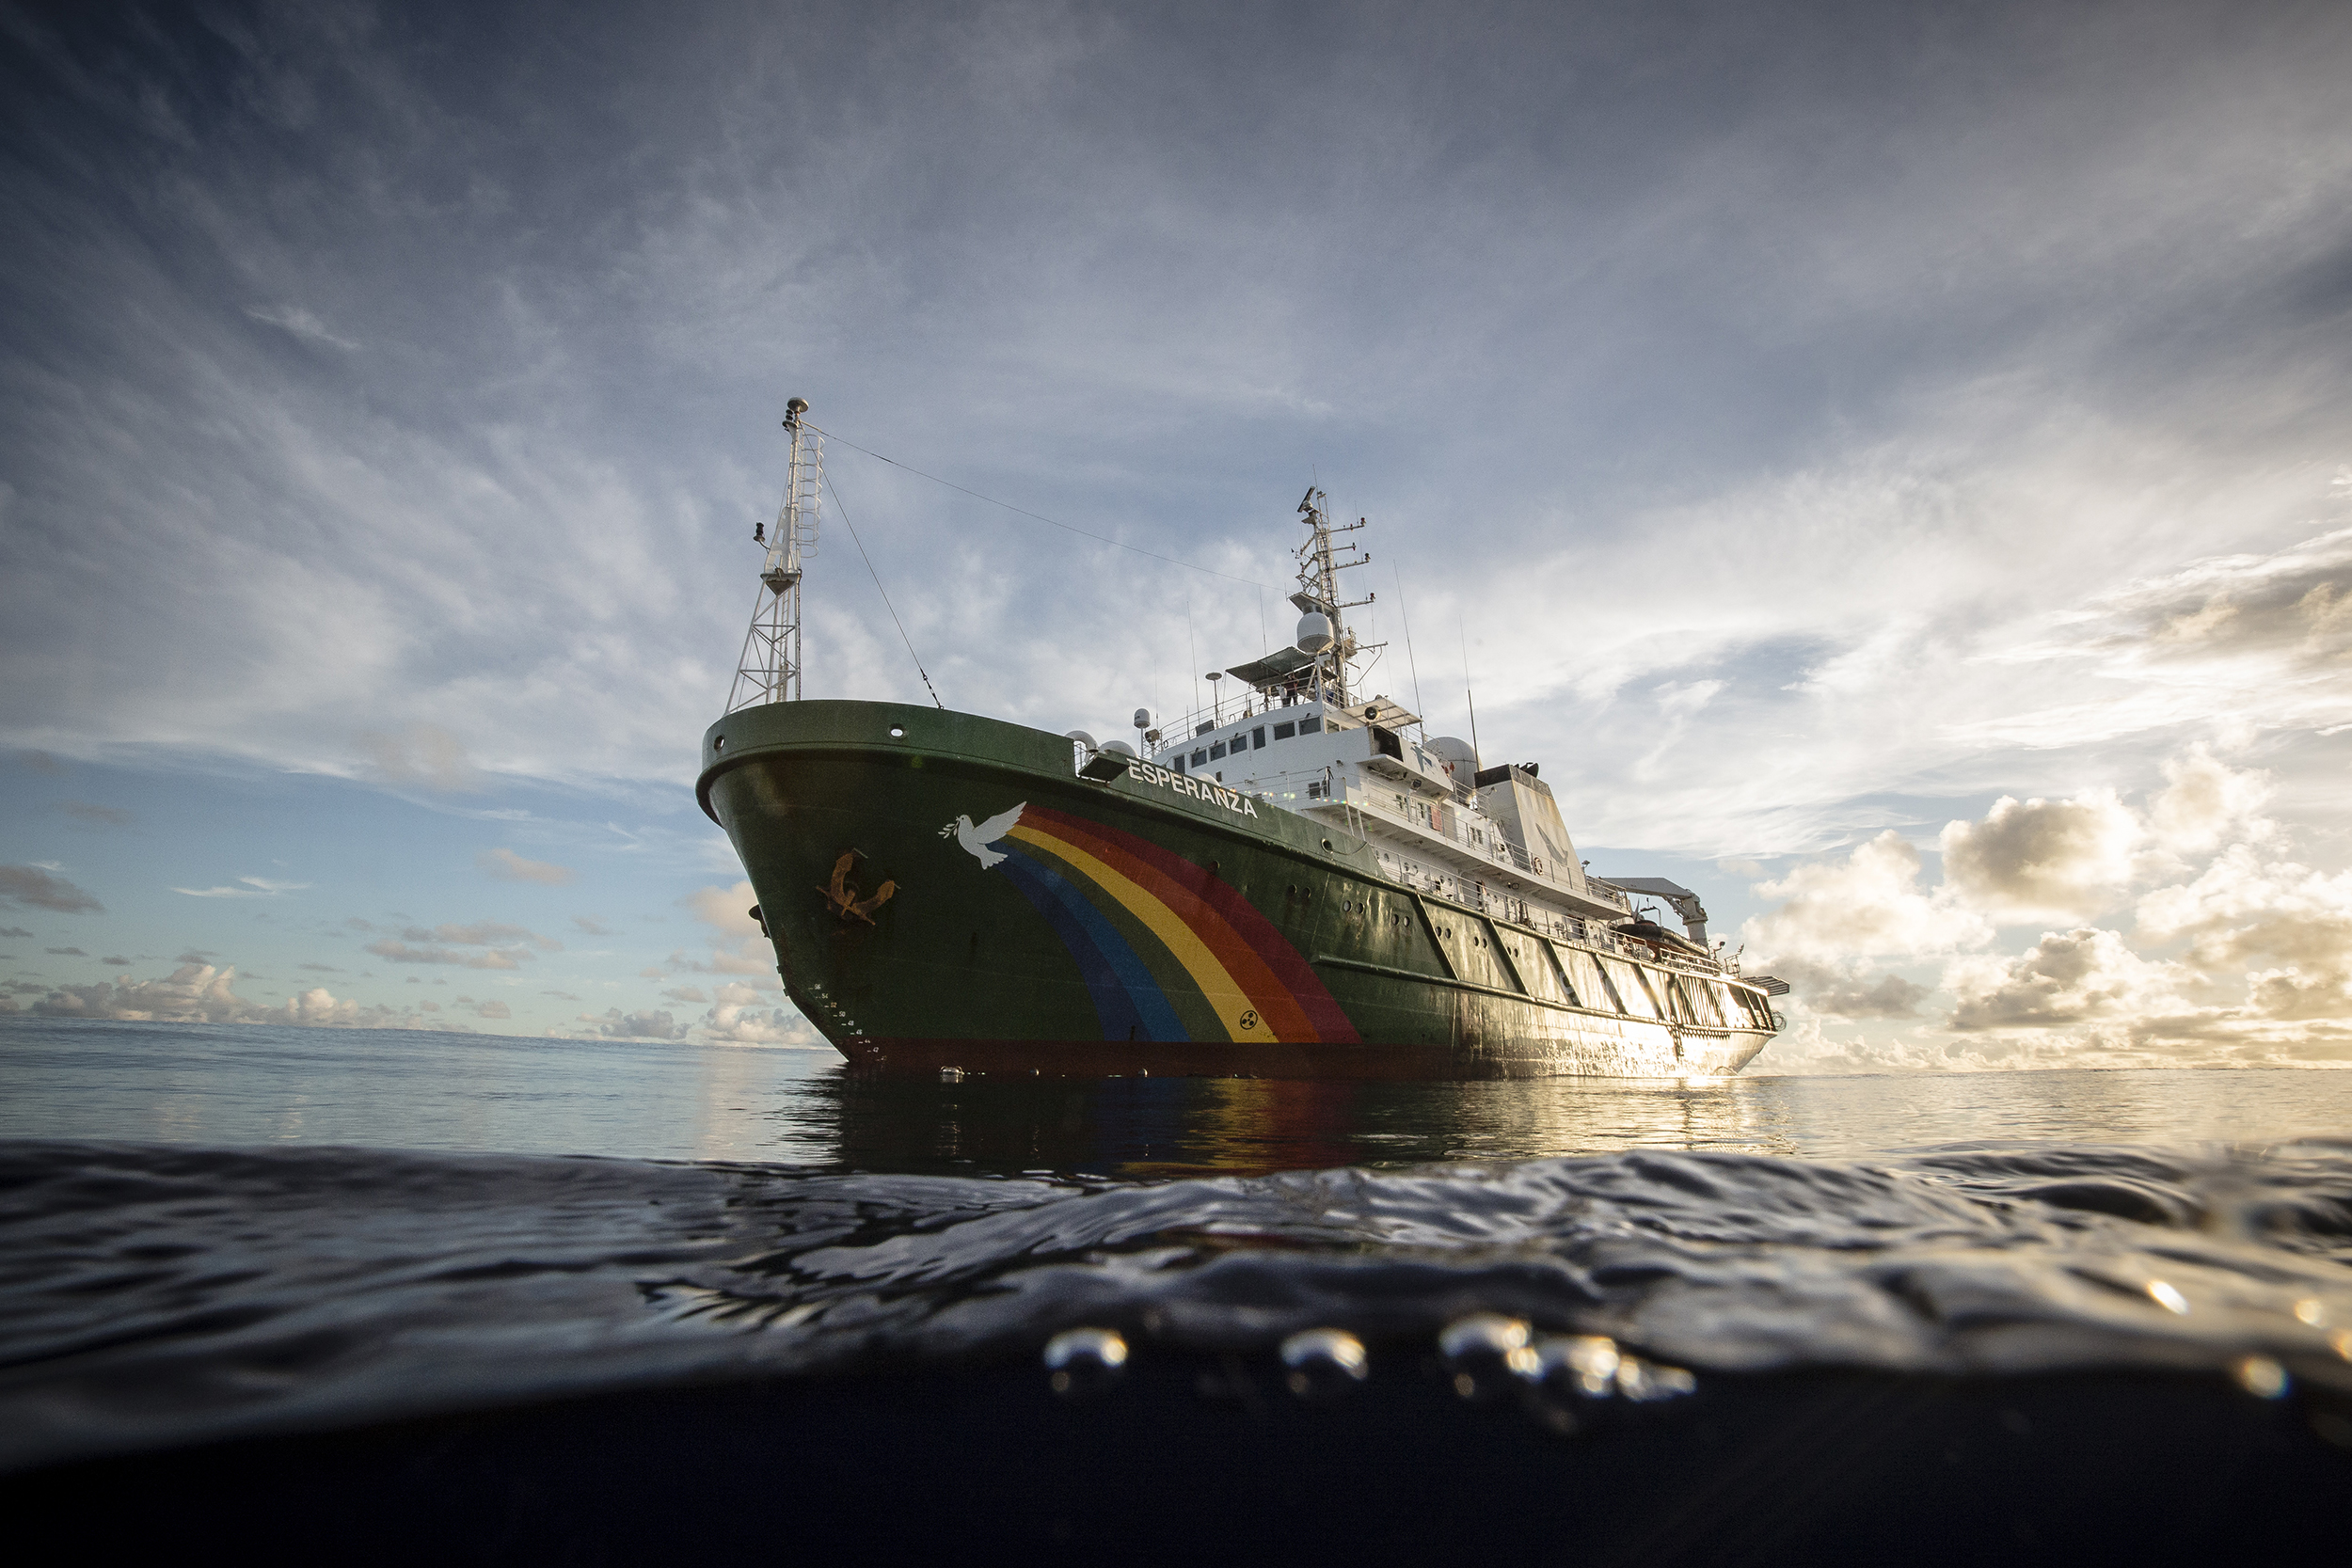 The Greenpeace ship Esperanza continues on an expedition in the Indian Ocean to peacefully tackle unsustainable fishing.